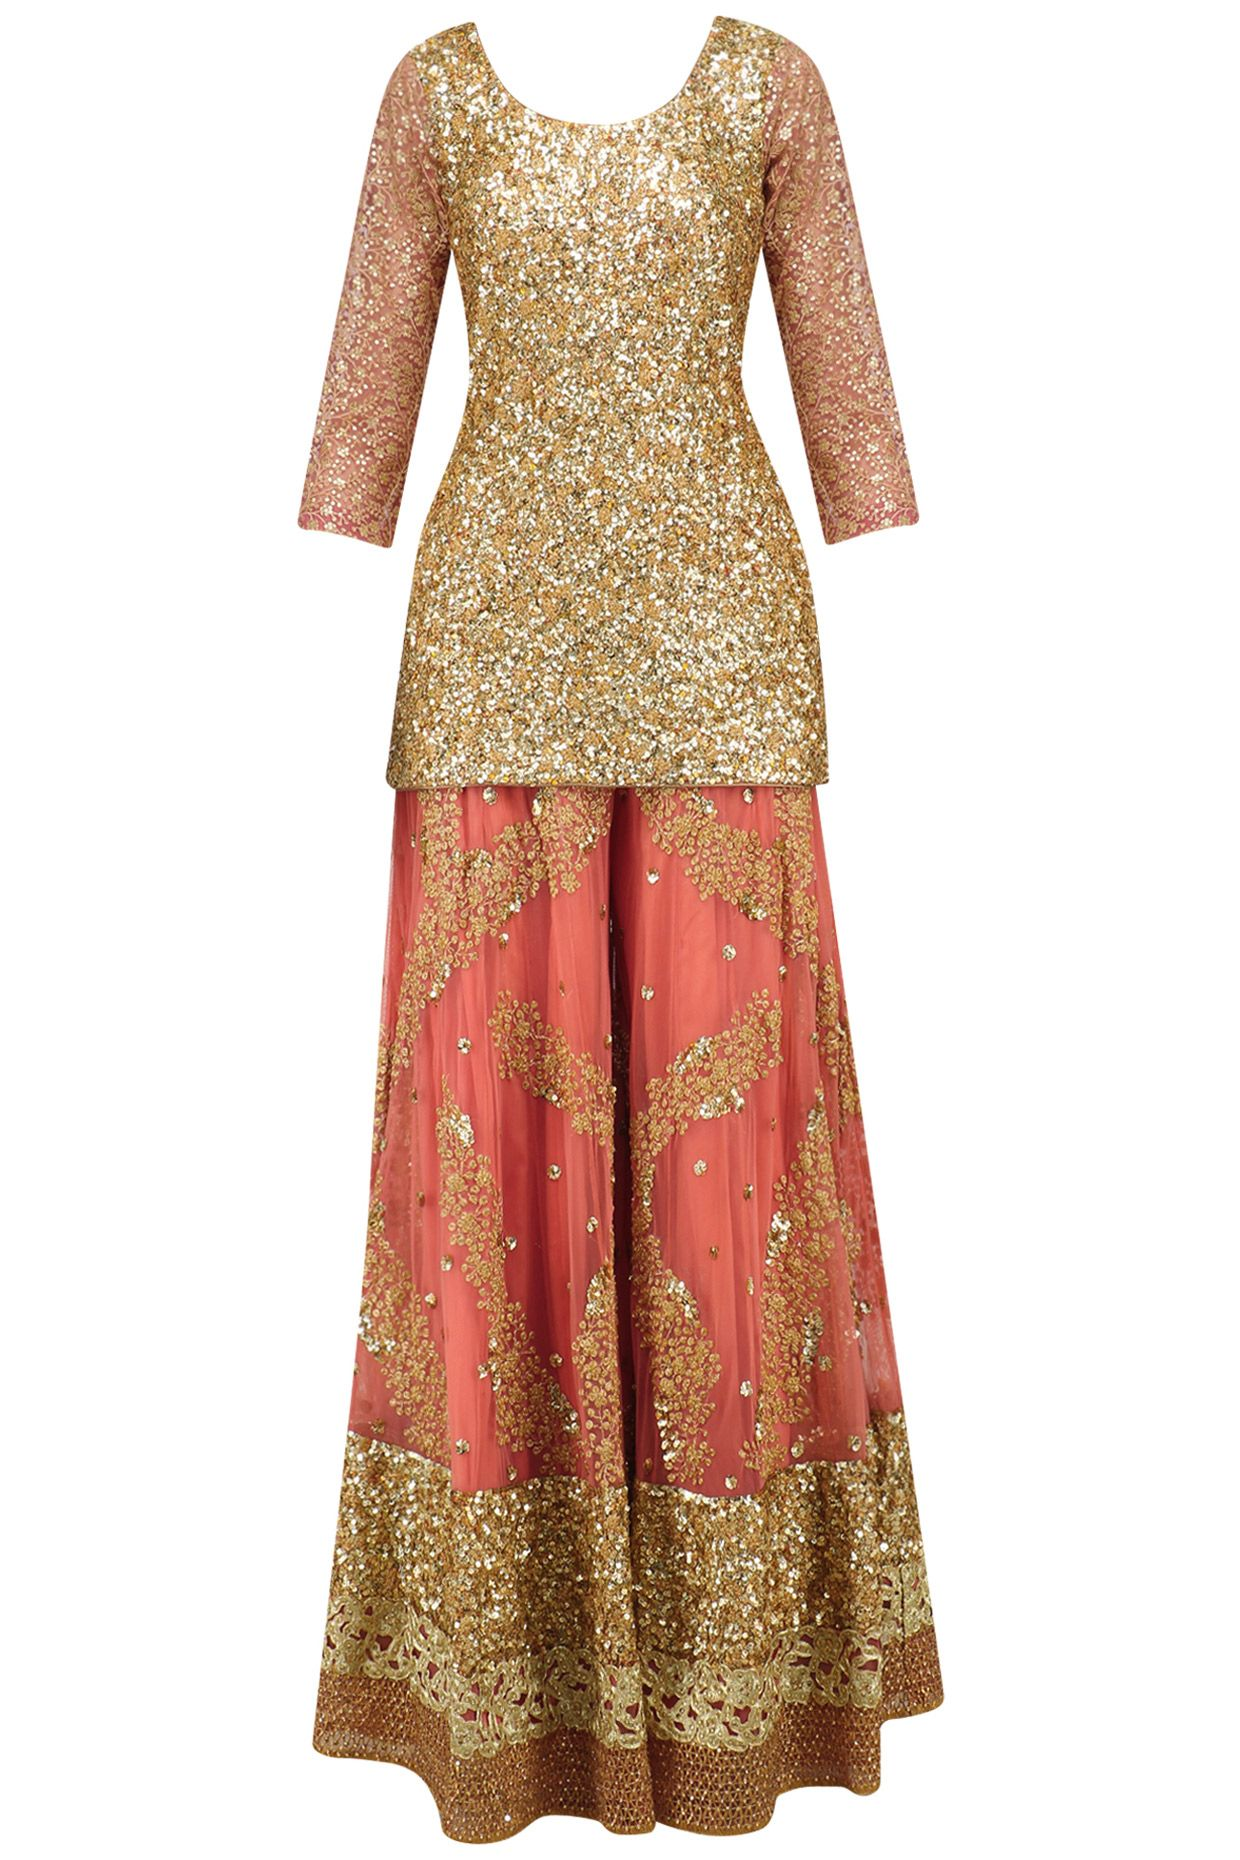 23305e2b50 Salmon pink embroidered sharara set available only at Pernia's Pop Up Shop.